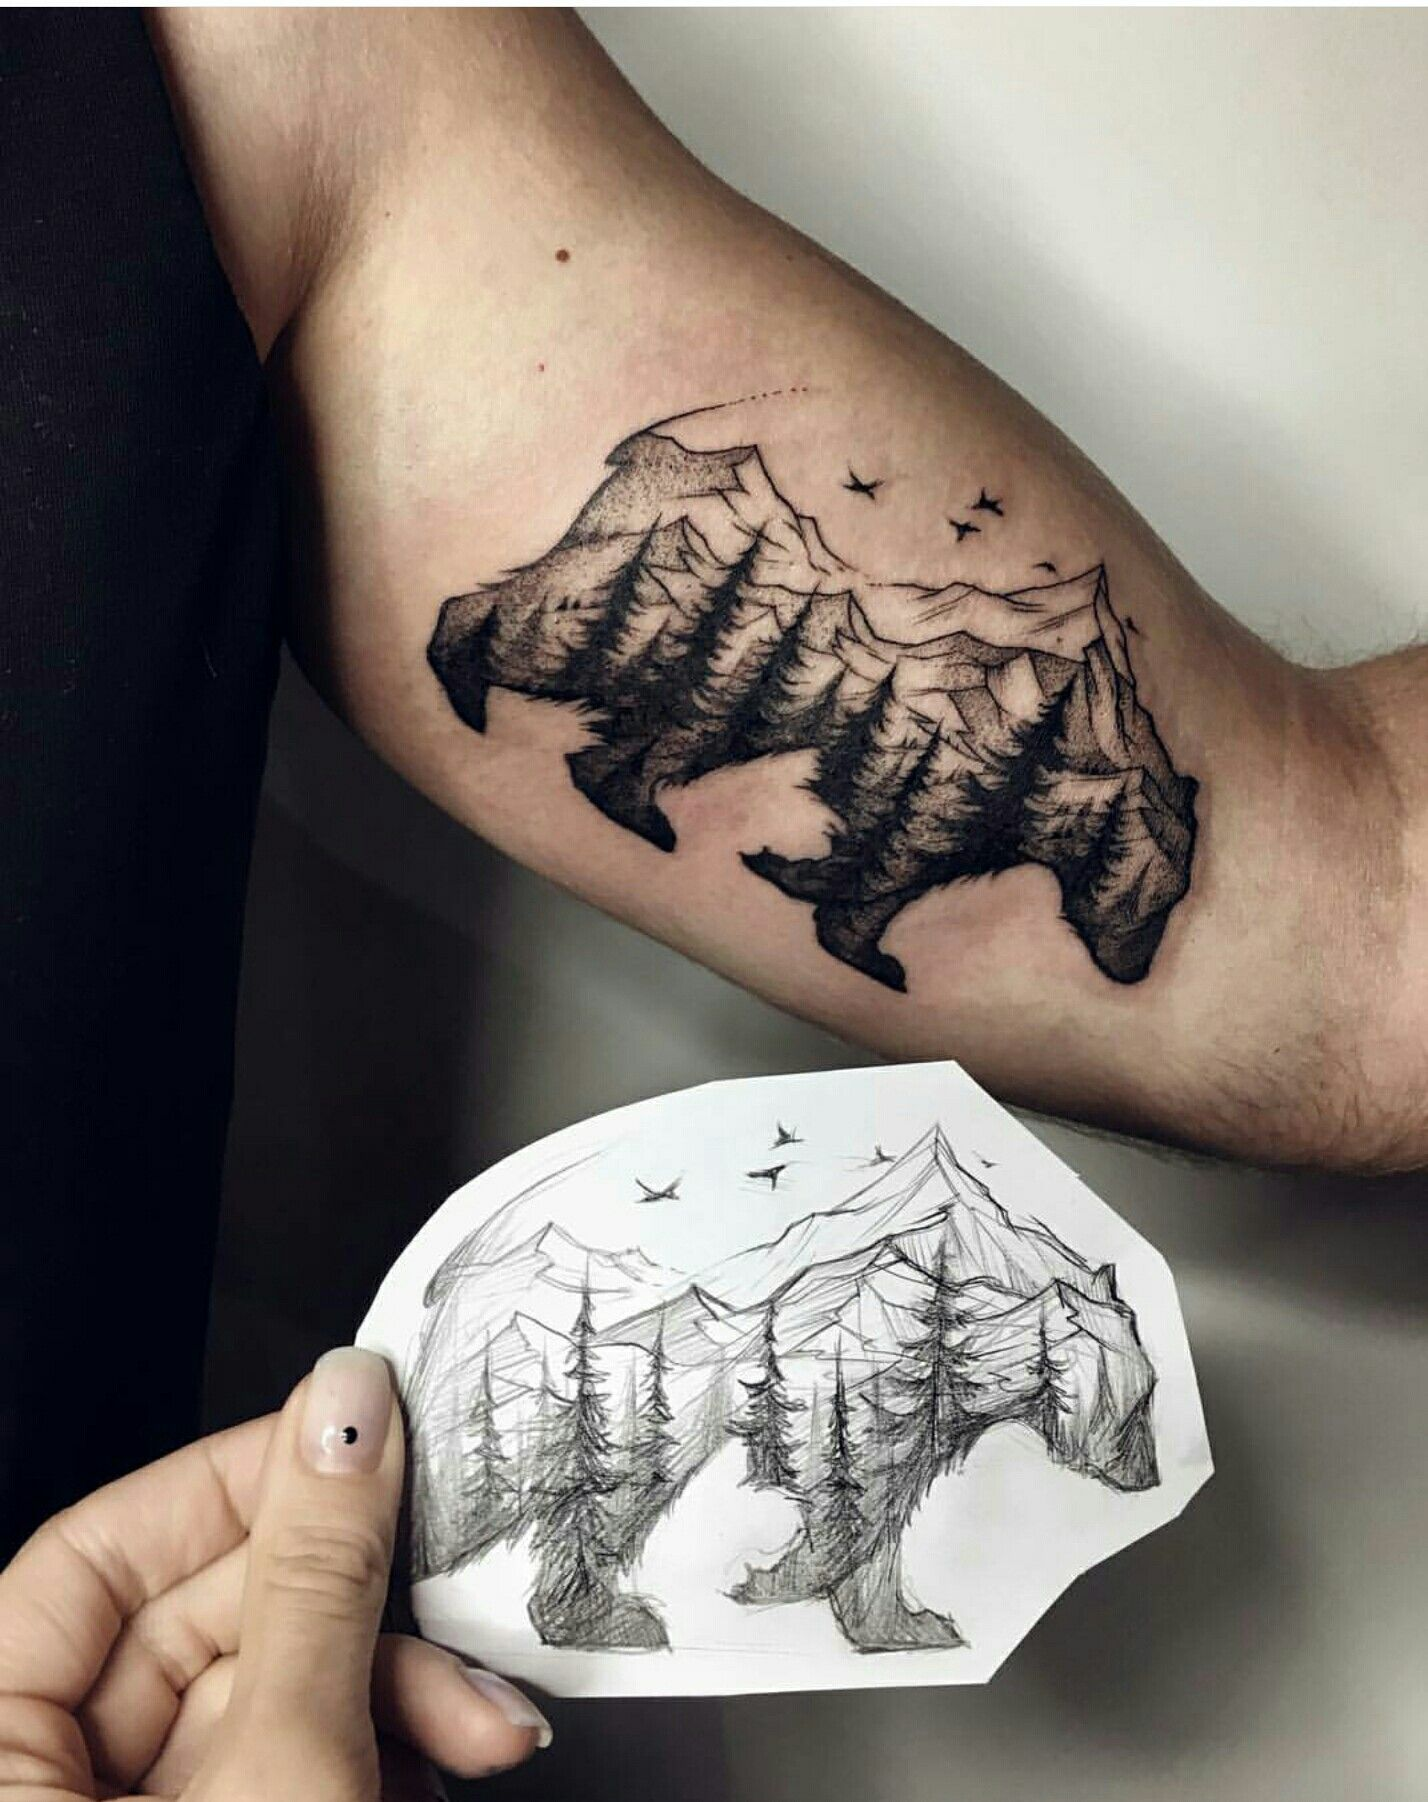 First tattoo ideas for men small pin by thomas msschs on tatoeage  pinterest  tattoo tatting and